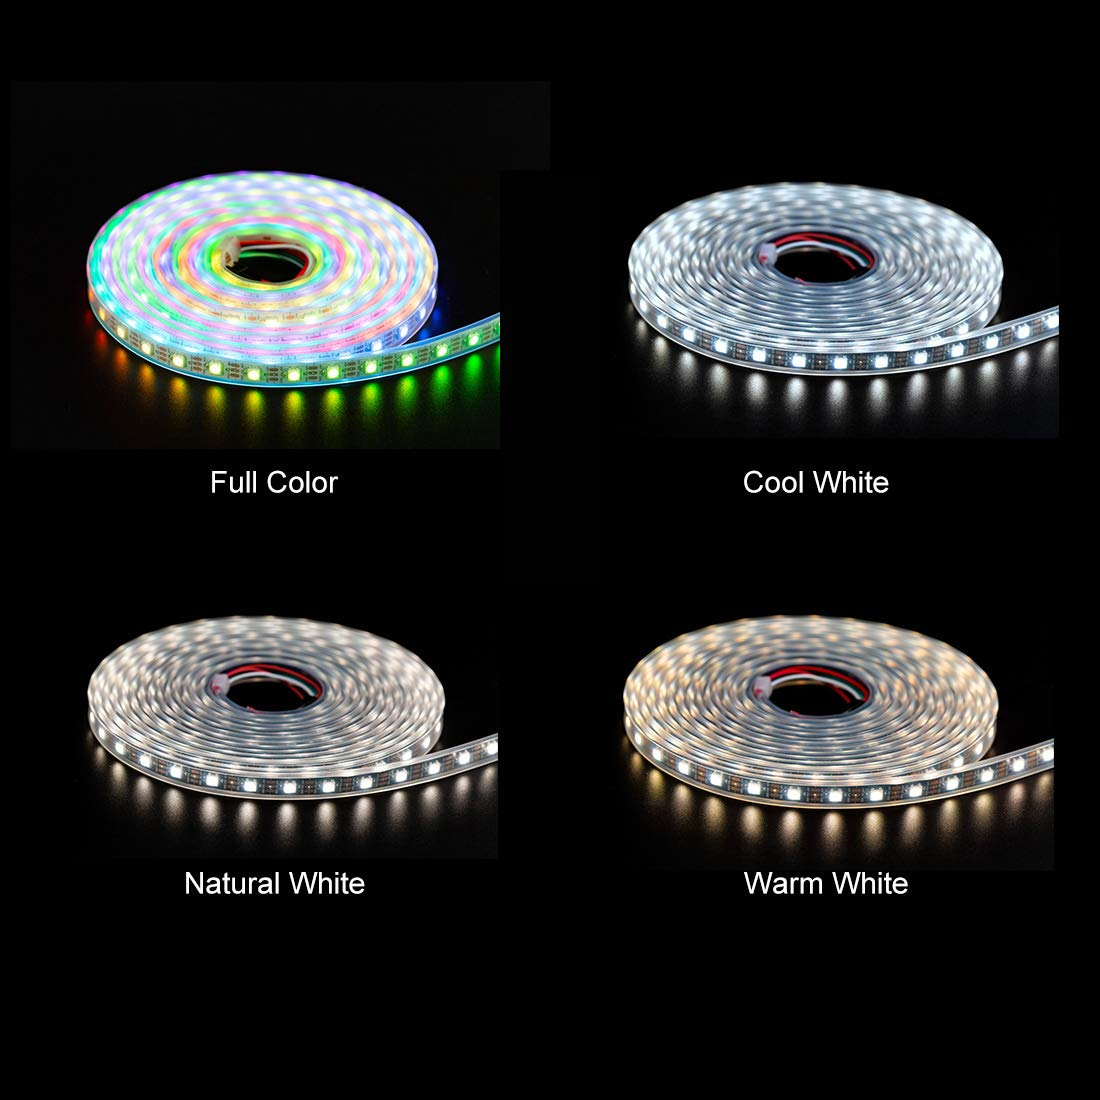 amazon com btf lighting rgbw rgbnw natural white sk6812 similar ws2812b 16 4ft 5m 60leds pixels m individually addressable flexible 4 color in 1 led